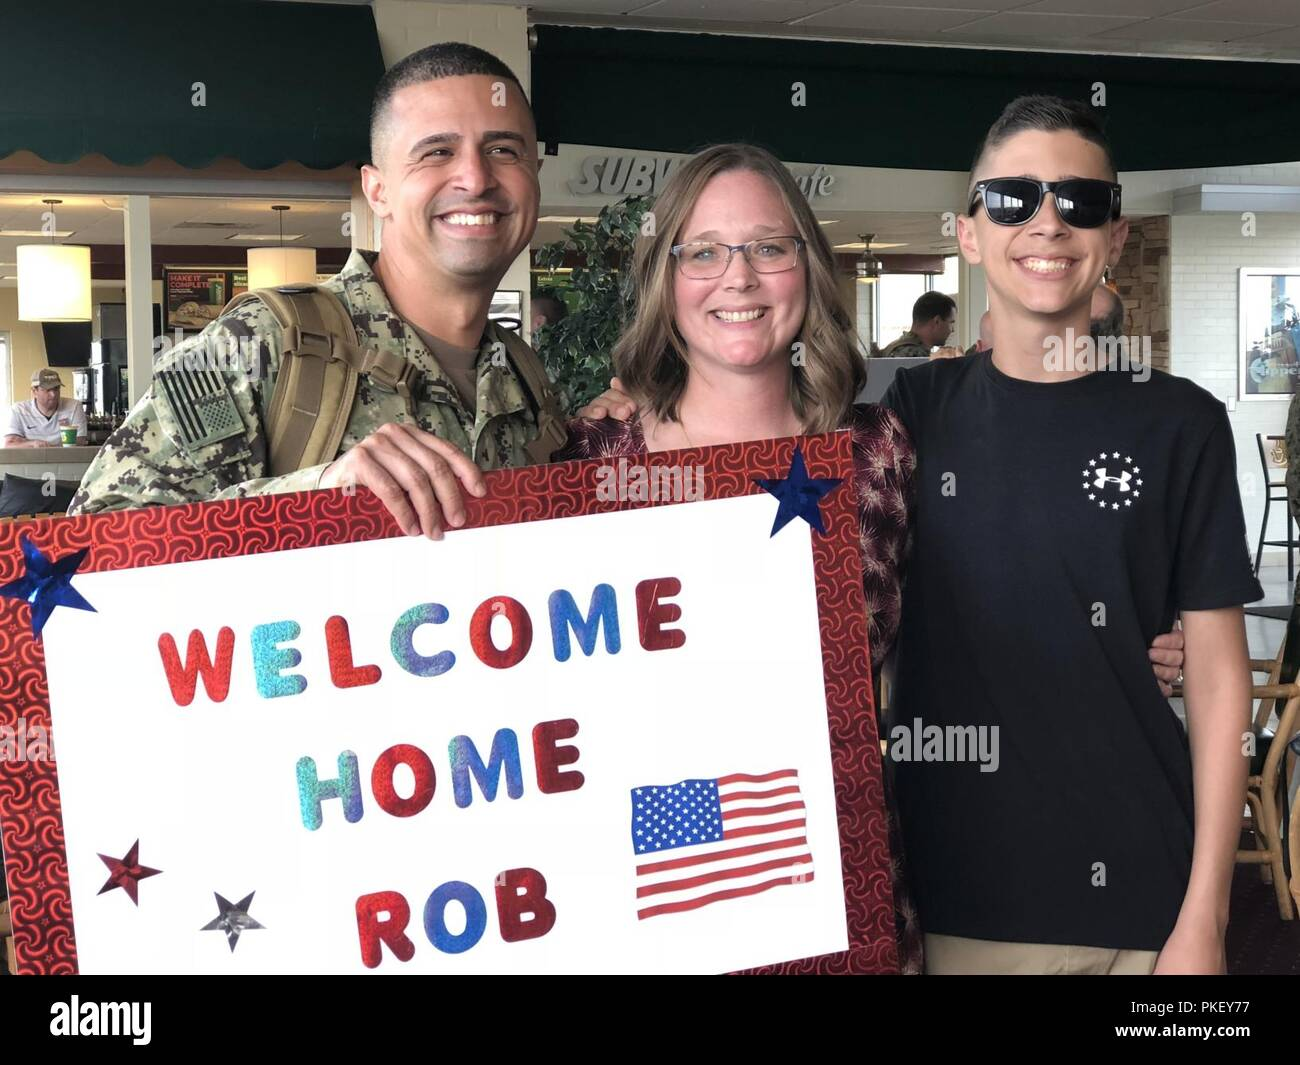 Coast Guardsmen, who is assigned to Port Security Unit 309, hugs his family upon arrival on July 29, 2018. Port Security Unit 309 returned to Port Clinton, OH after being deployed to Guantanamo Bay, Cuba, for nine months in support of Operation Freedom's Sentinel. PSUs serve as anti-terrorism force protection expeditionary units with boat crews and shore-side security teams capable of supporting port and waterway security anywhere the military operates. U.S. Coast Guard Stock Photo